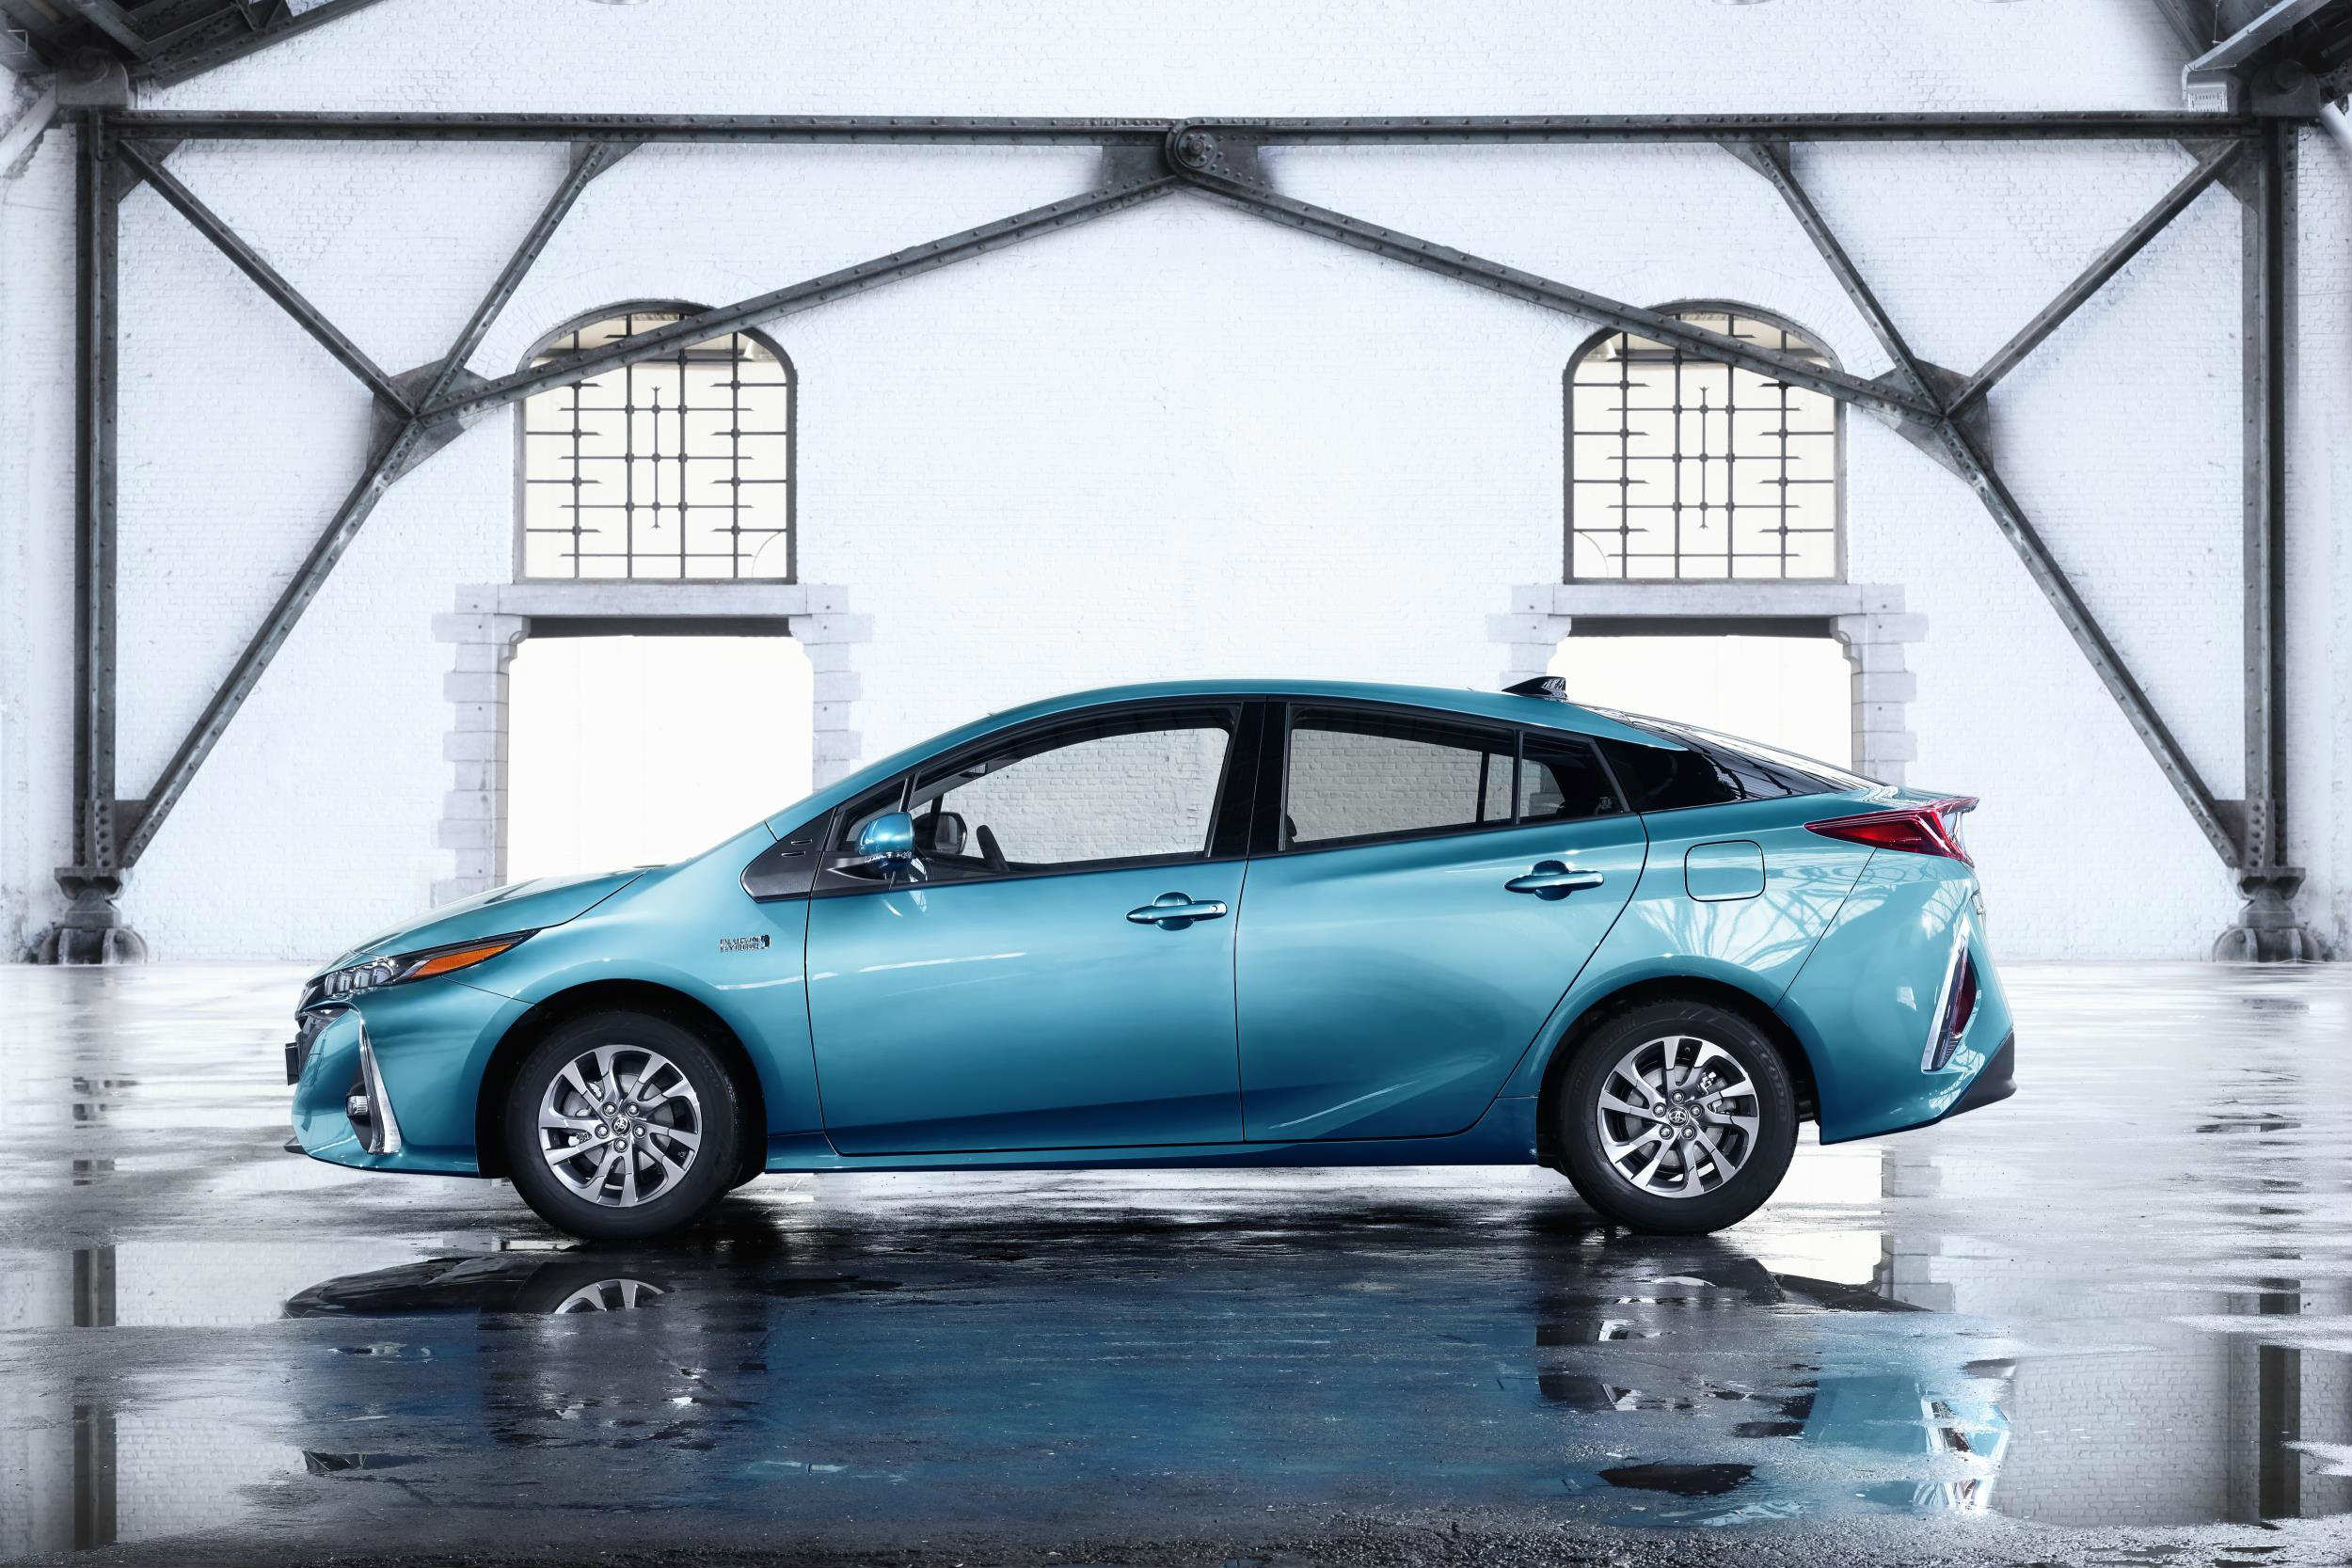 Toyota Prius is the most reliable used car in the 2017 Driver Power survey